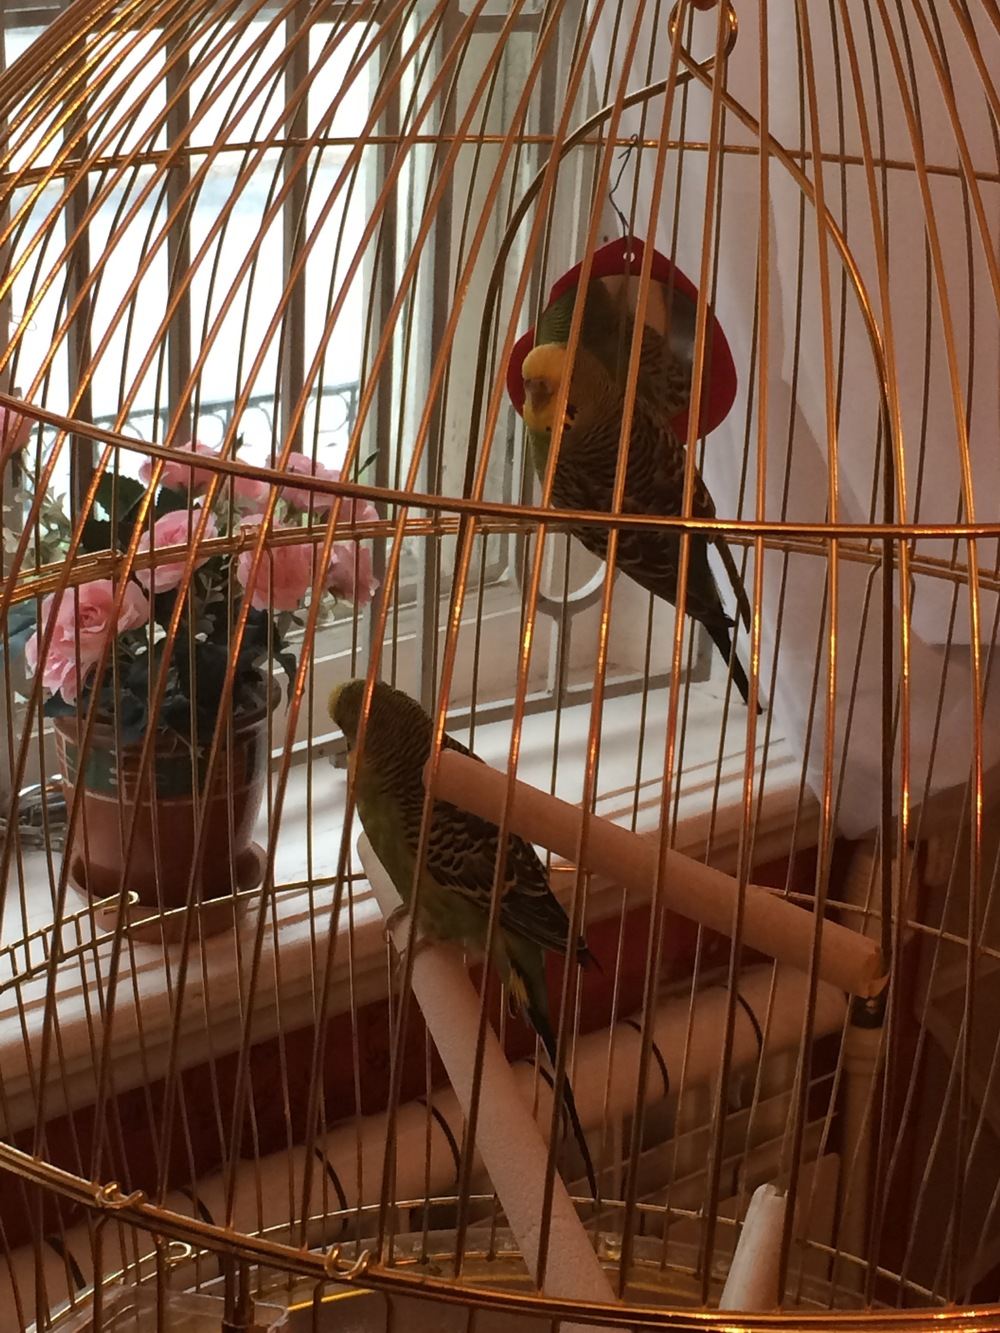 They had songbirds at the Rimsky-Korsakov museum. It seemed fitting.